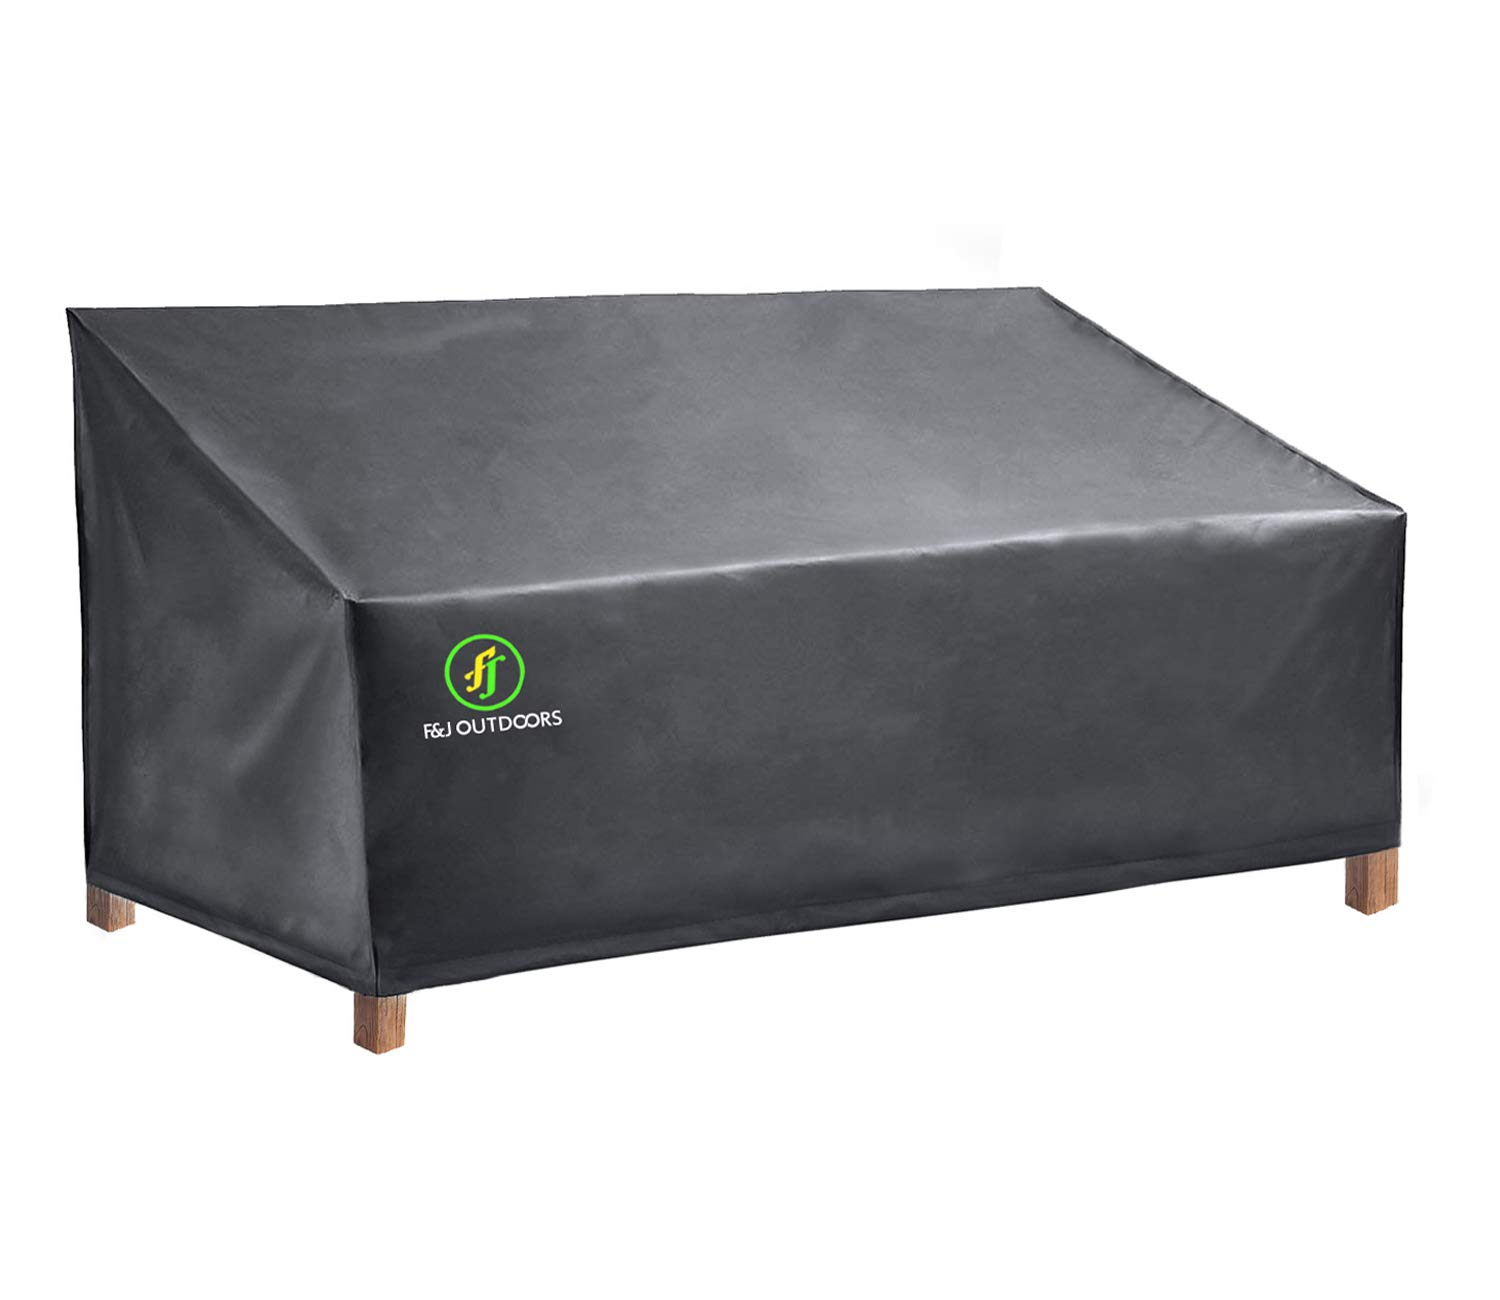 Patio Sofa Cover, Durable Waterproof UV Resistant Outdoor Furniture Covers for 3-Seater Sofas, Grey by F&J Outdoors